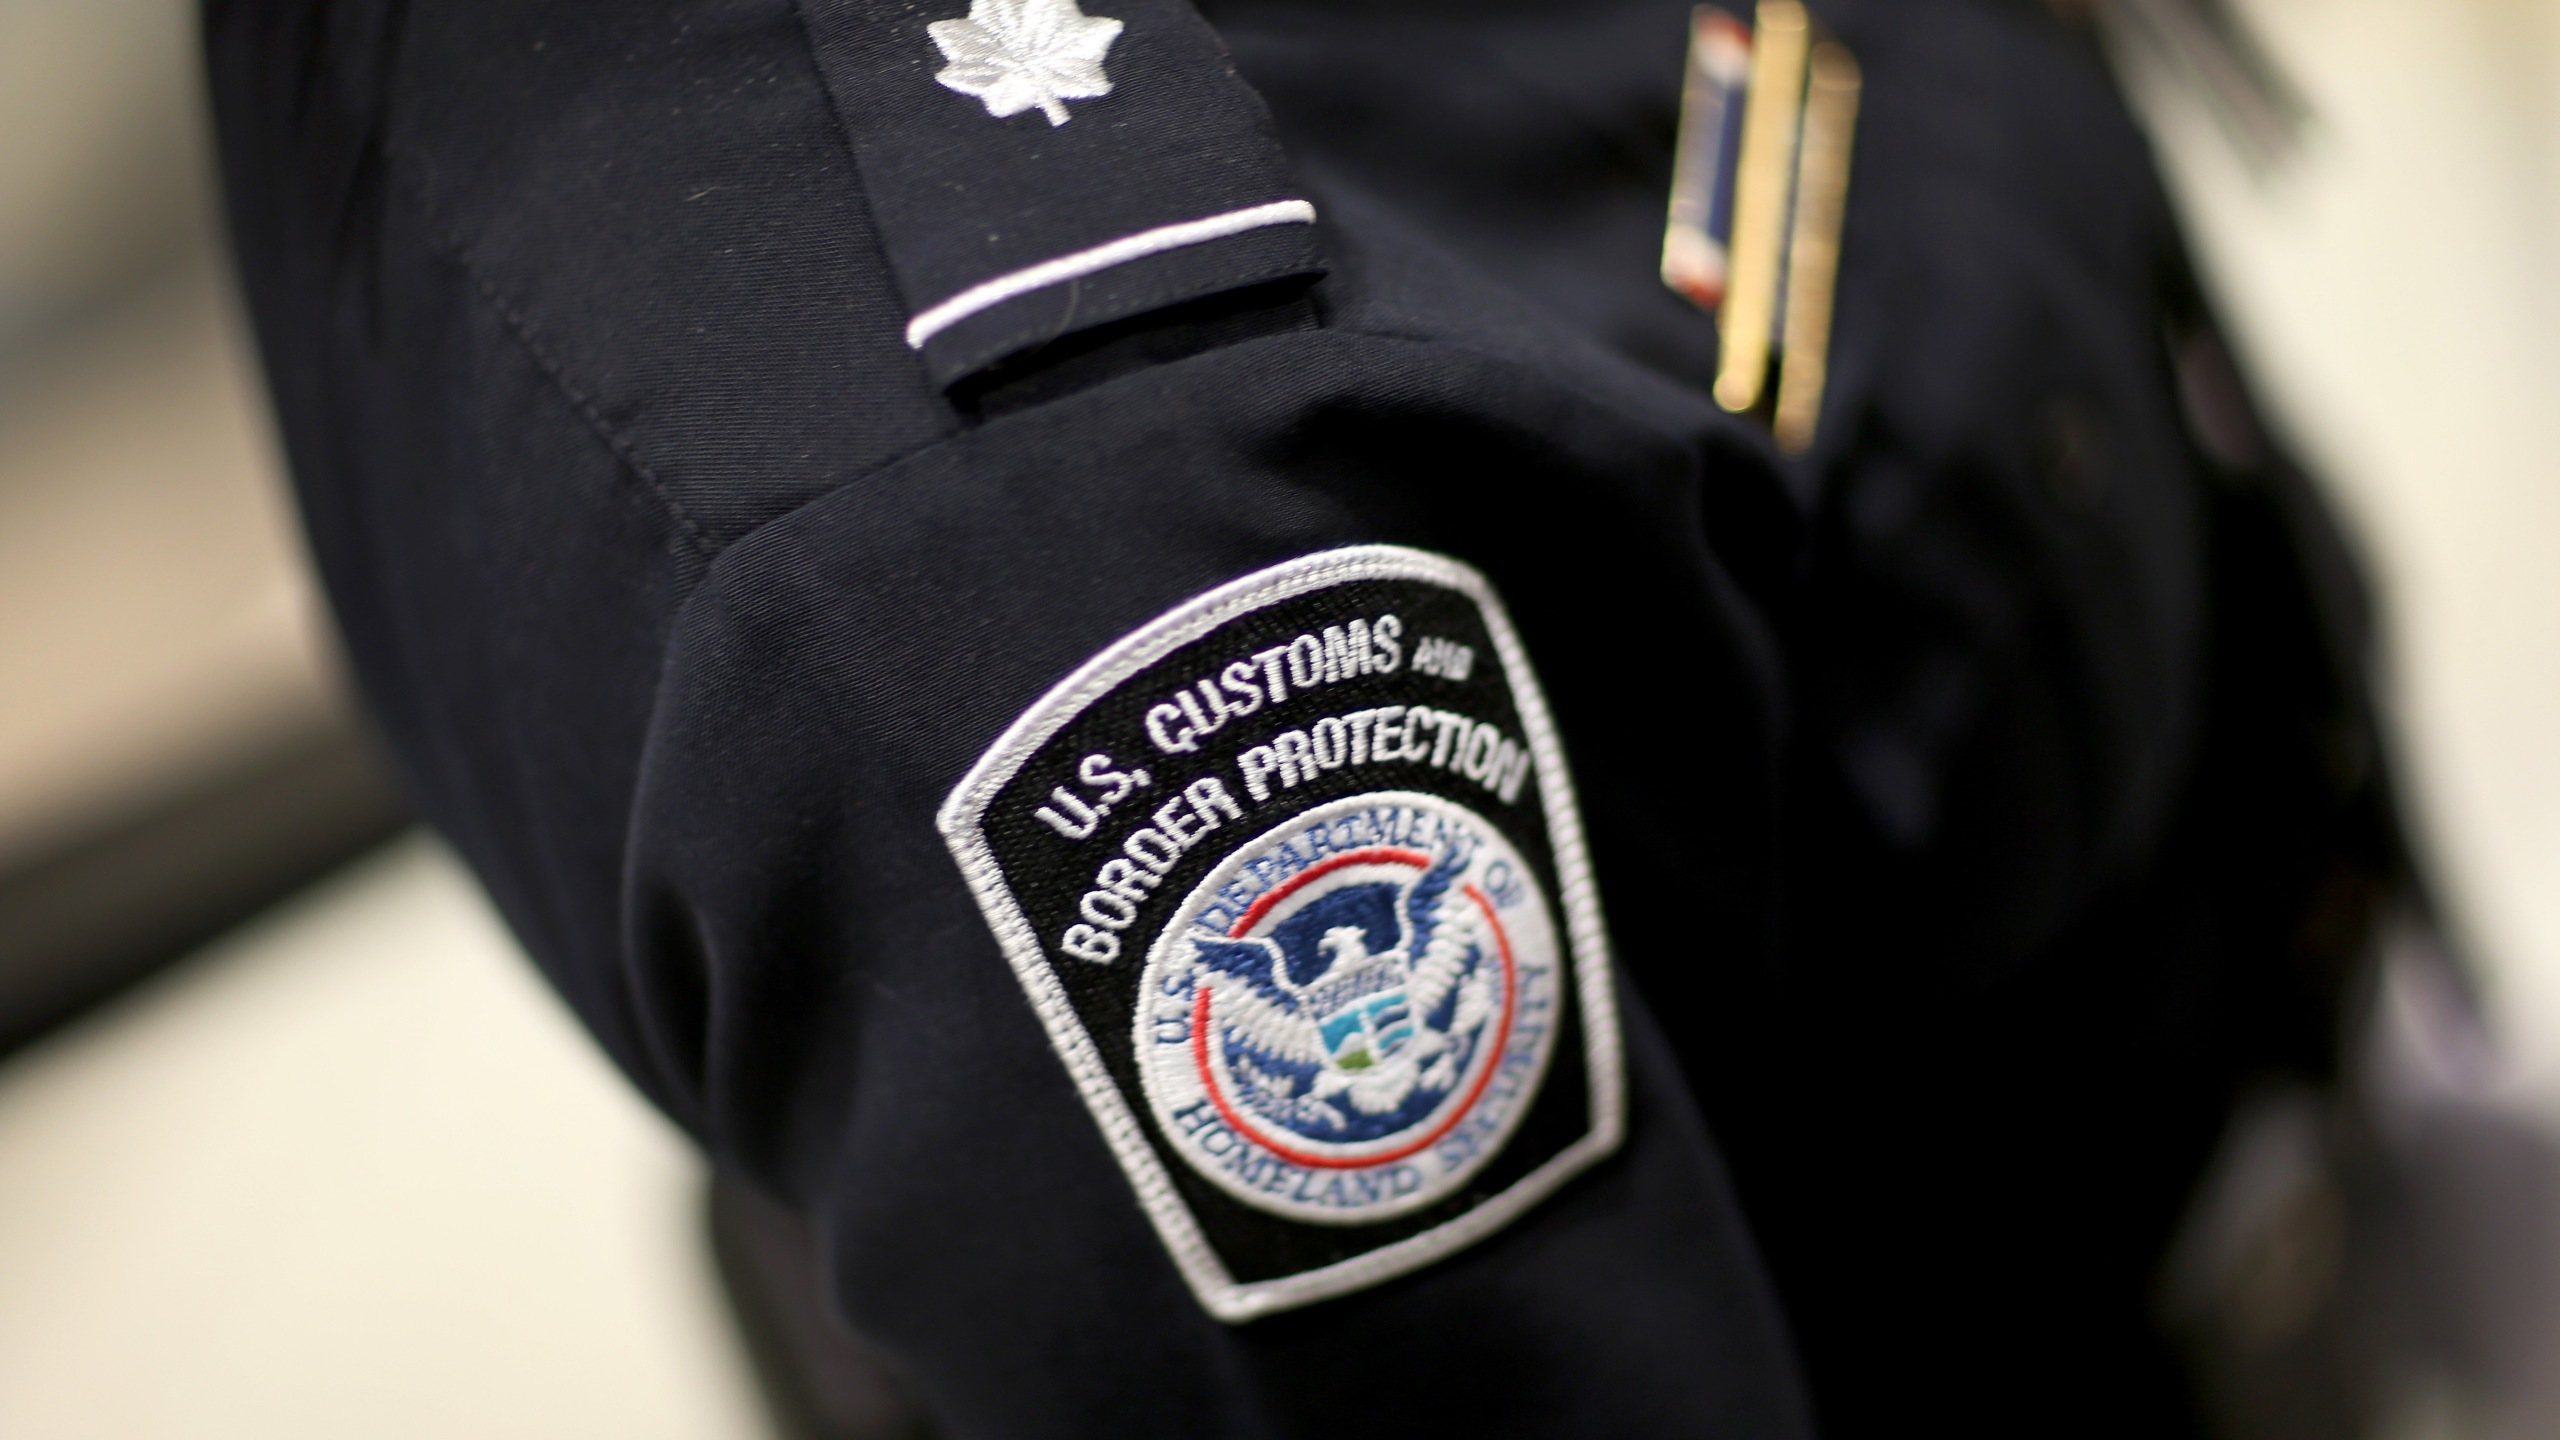 A U.S. Customs and Border Protection officer's patch is seen as they unveil a new mobile app for international travelers arriving at Miami International Airport on March 4, 2015. (Credit: Joe Raedle / Getty Images)